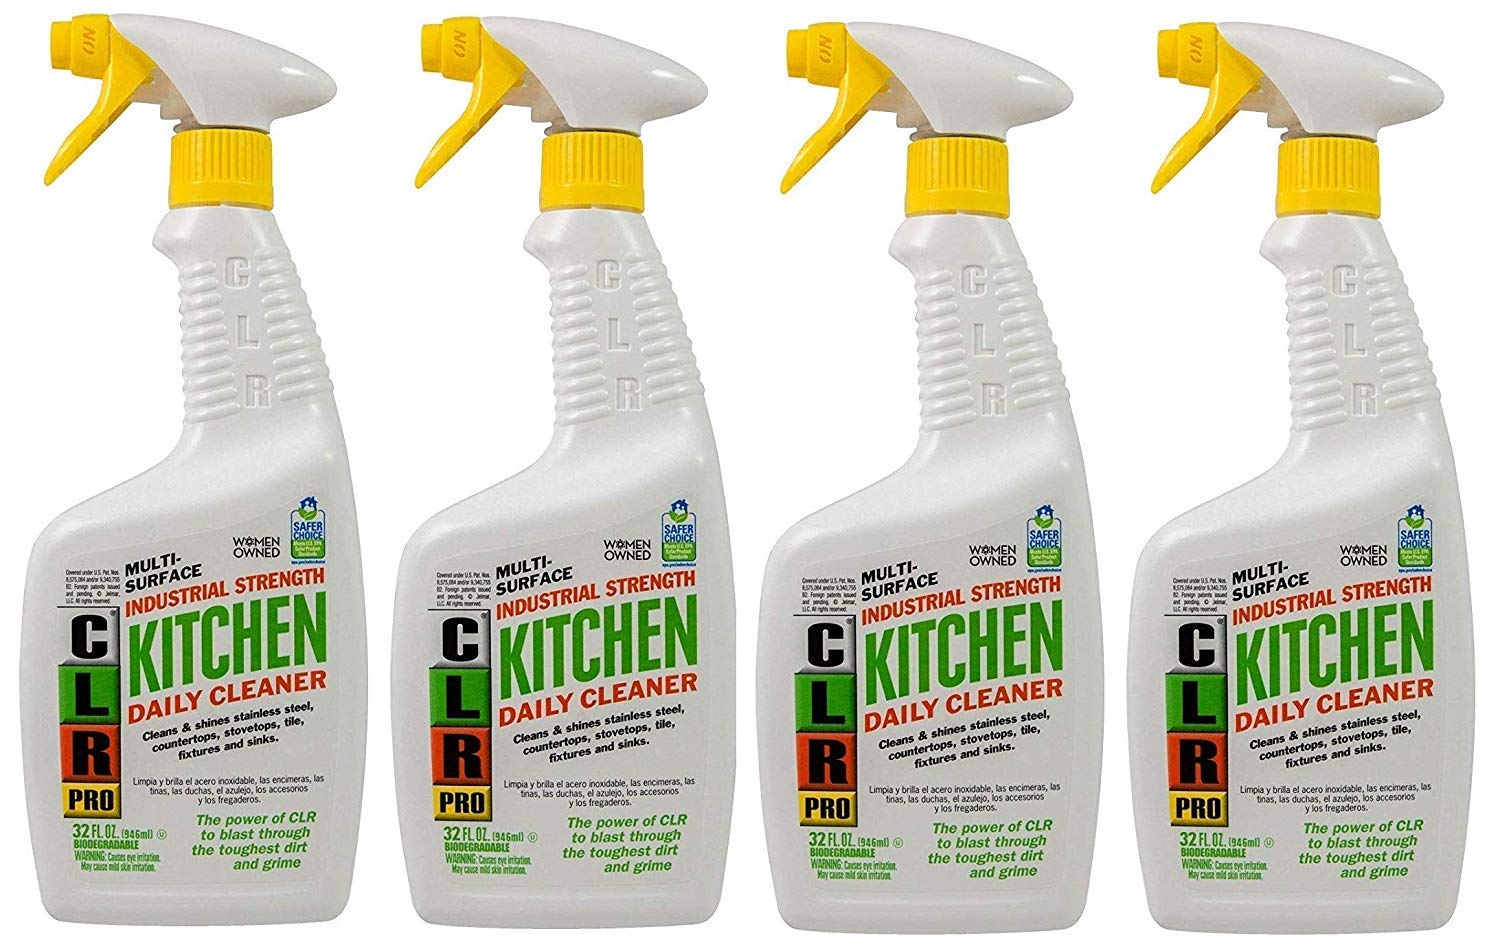 CLR Pro PB-KITCH-32PRO Multi Purpose Daily Kitchen Cleaner, 32 oz Trigger Spray. (4-(Pack))